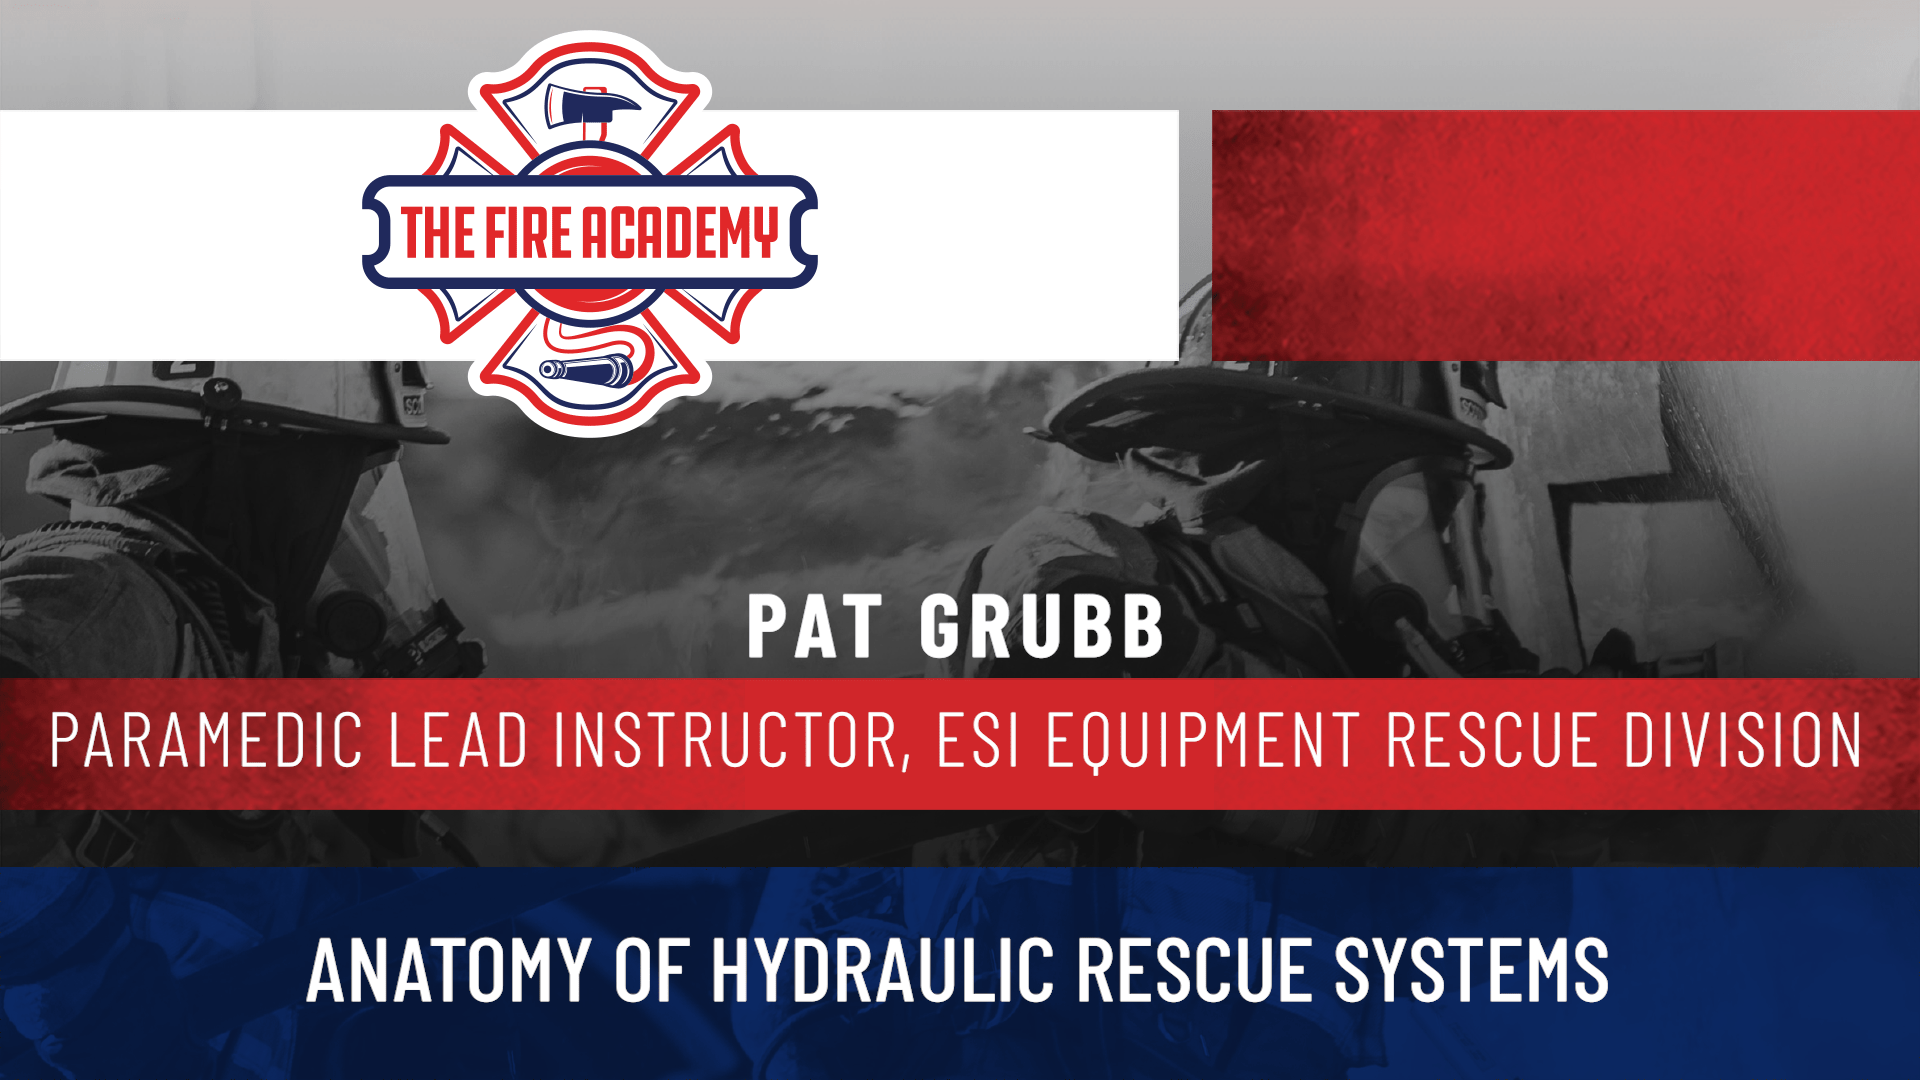 Anatomy of Hydraulic Rescue Systems